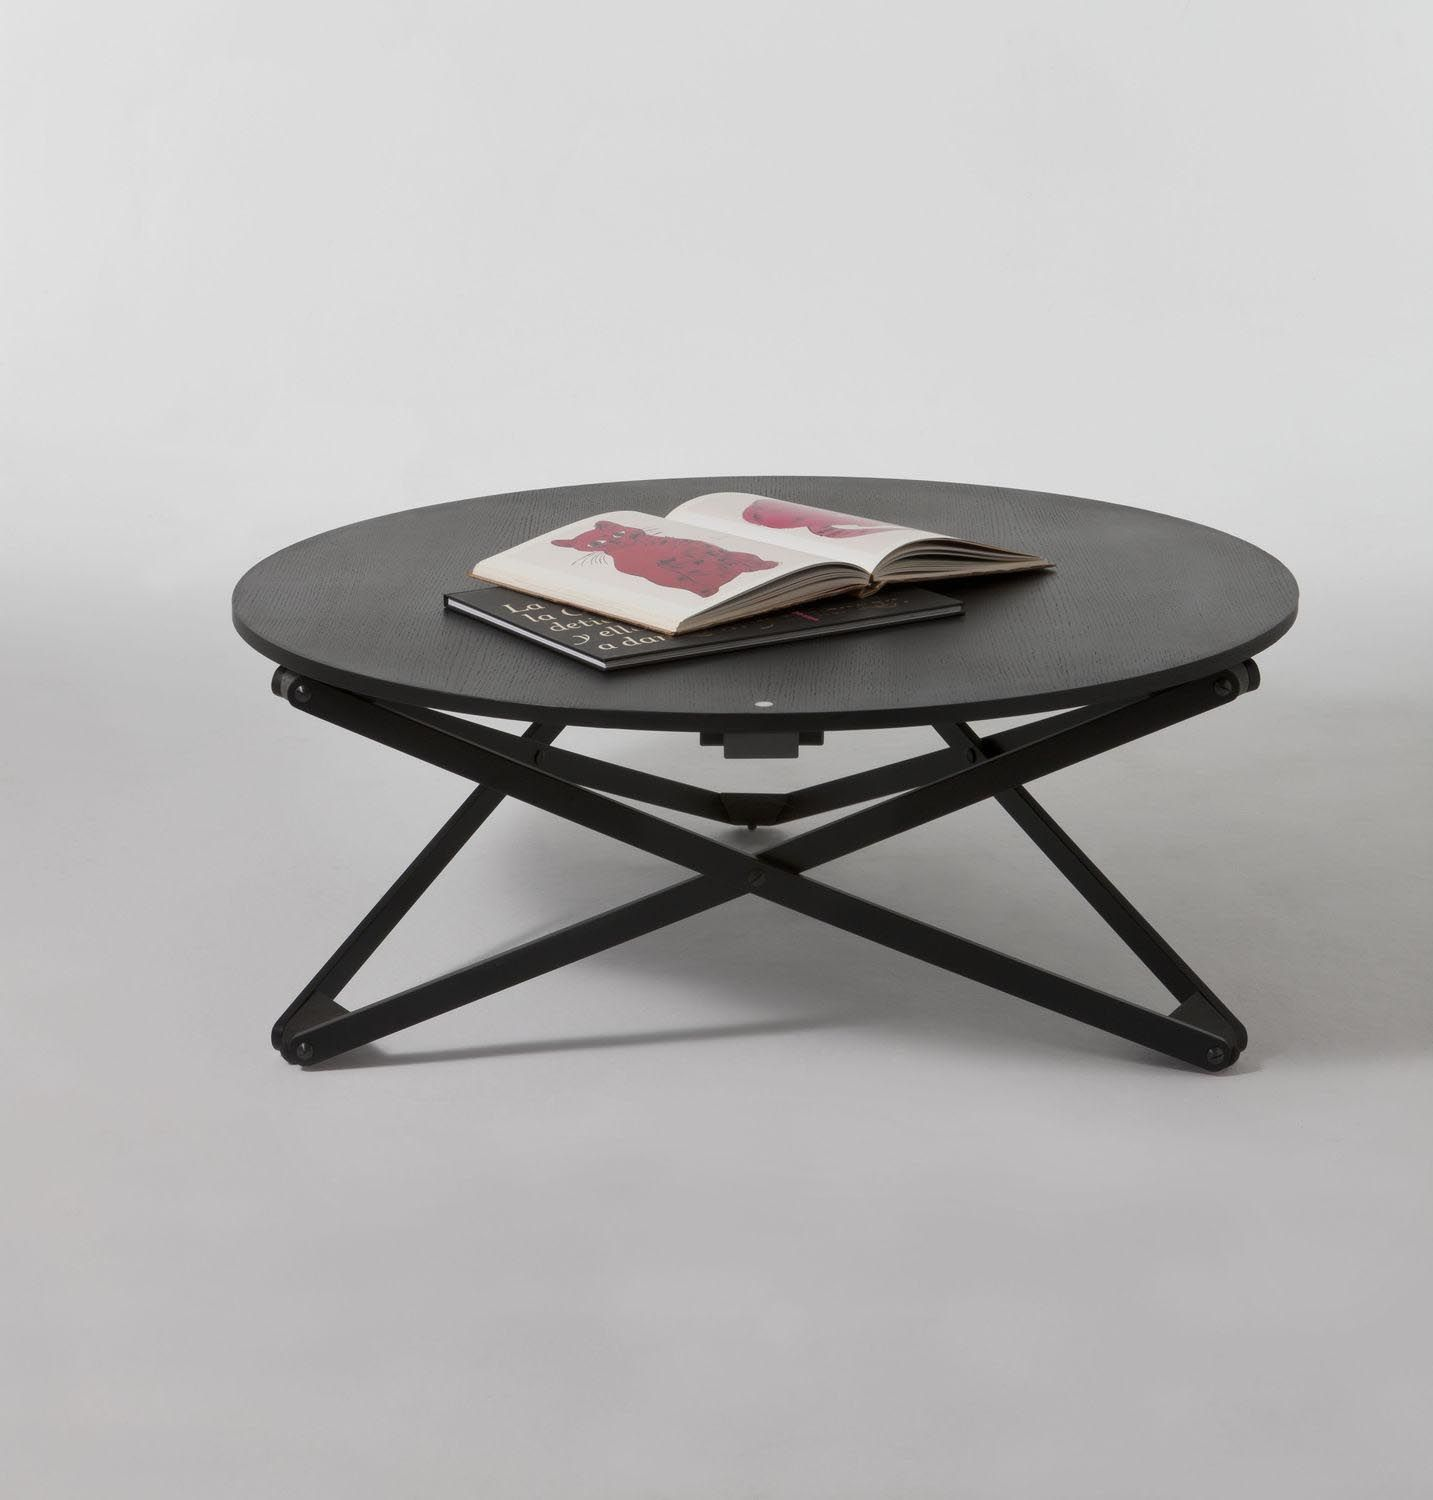 Round Coffee Table Measurements: Adjustable Height Coffee Table More